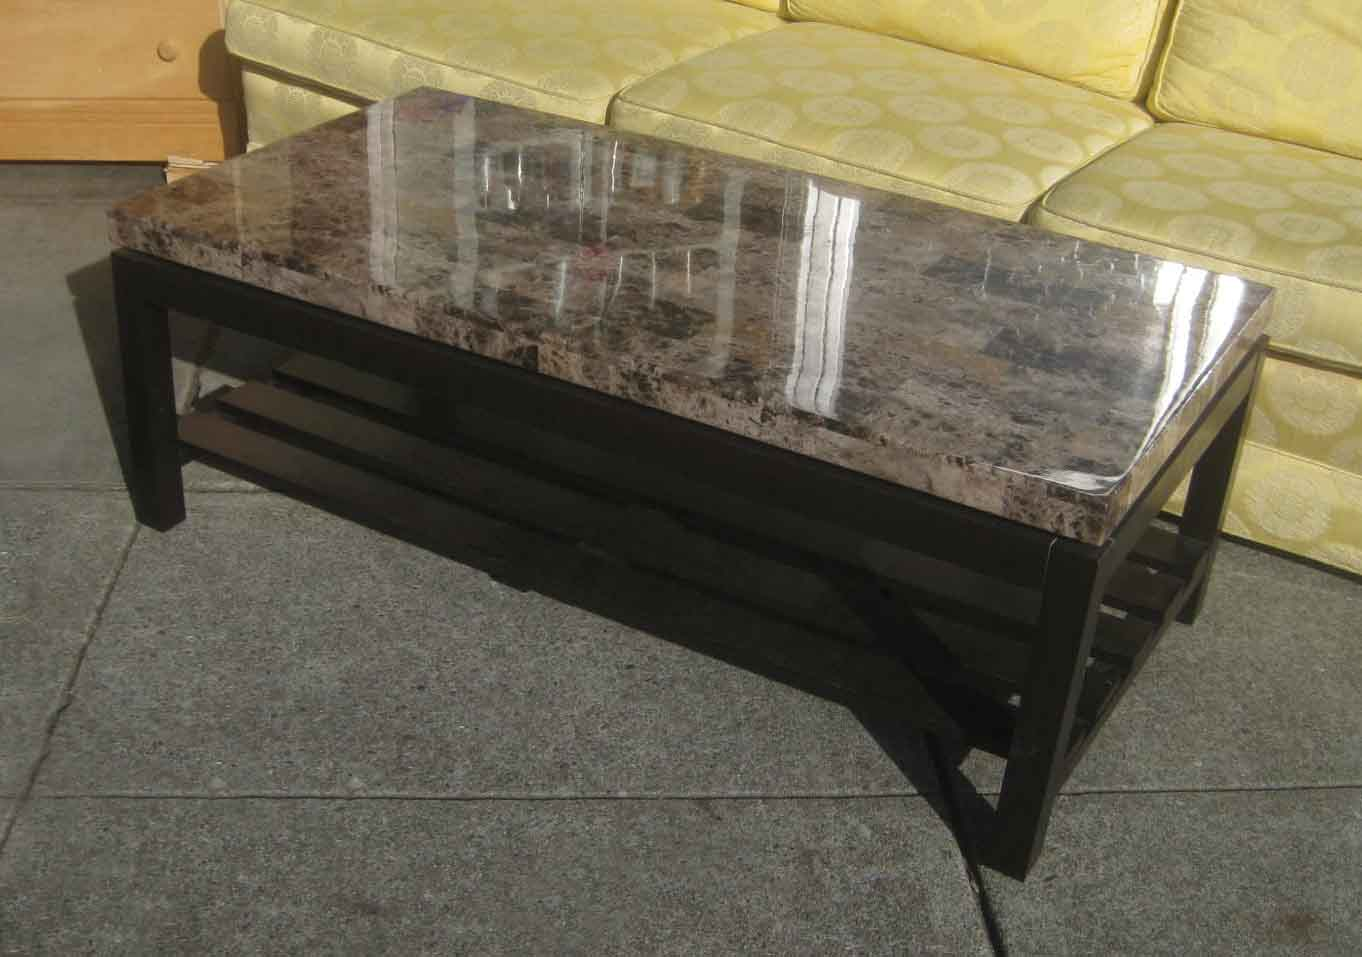 UHURU FURNITURE amp COLLECTIBLES SOLD Faux Marble Top  : CoffeeTableFauxMarble from uhurufurniture.blogspot.com size 1362 x 957 jpeg 64kB